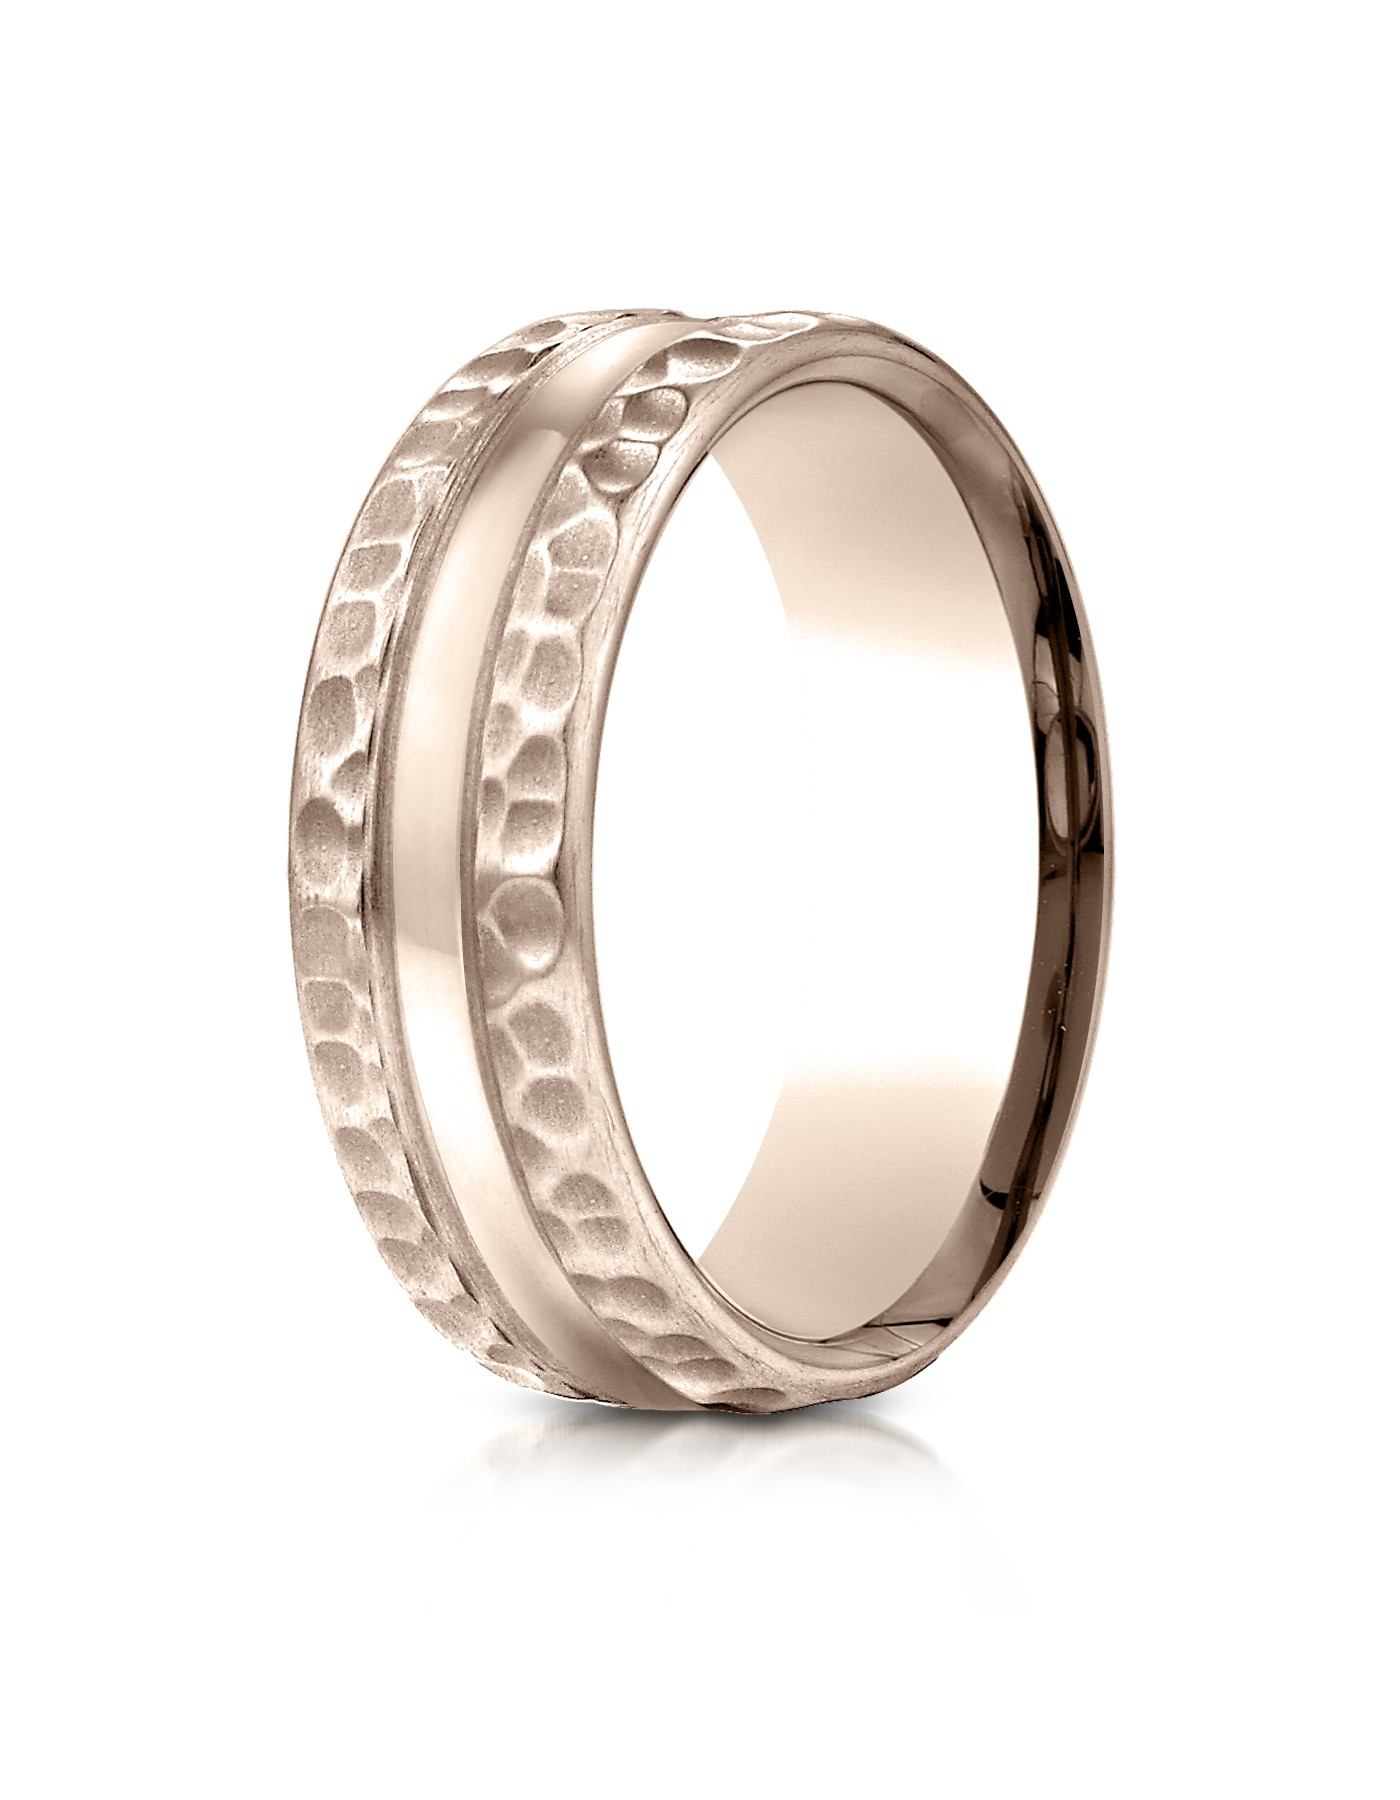 14k Rose Gold 7.5mm Comfort Fit Hammered Finish Center Cut Design Band